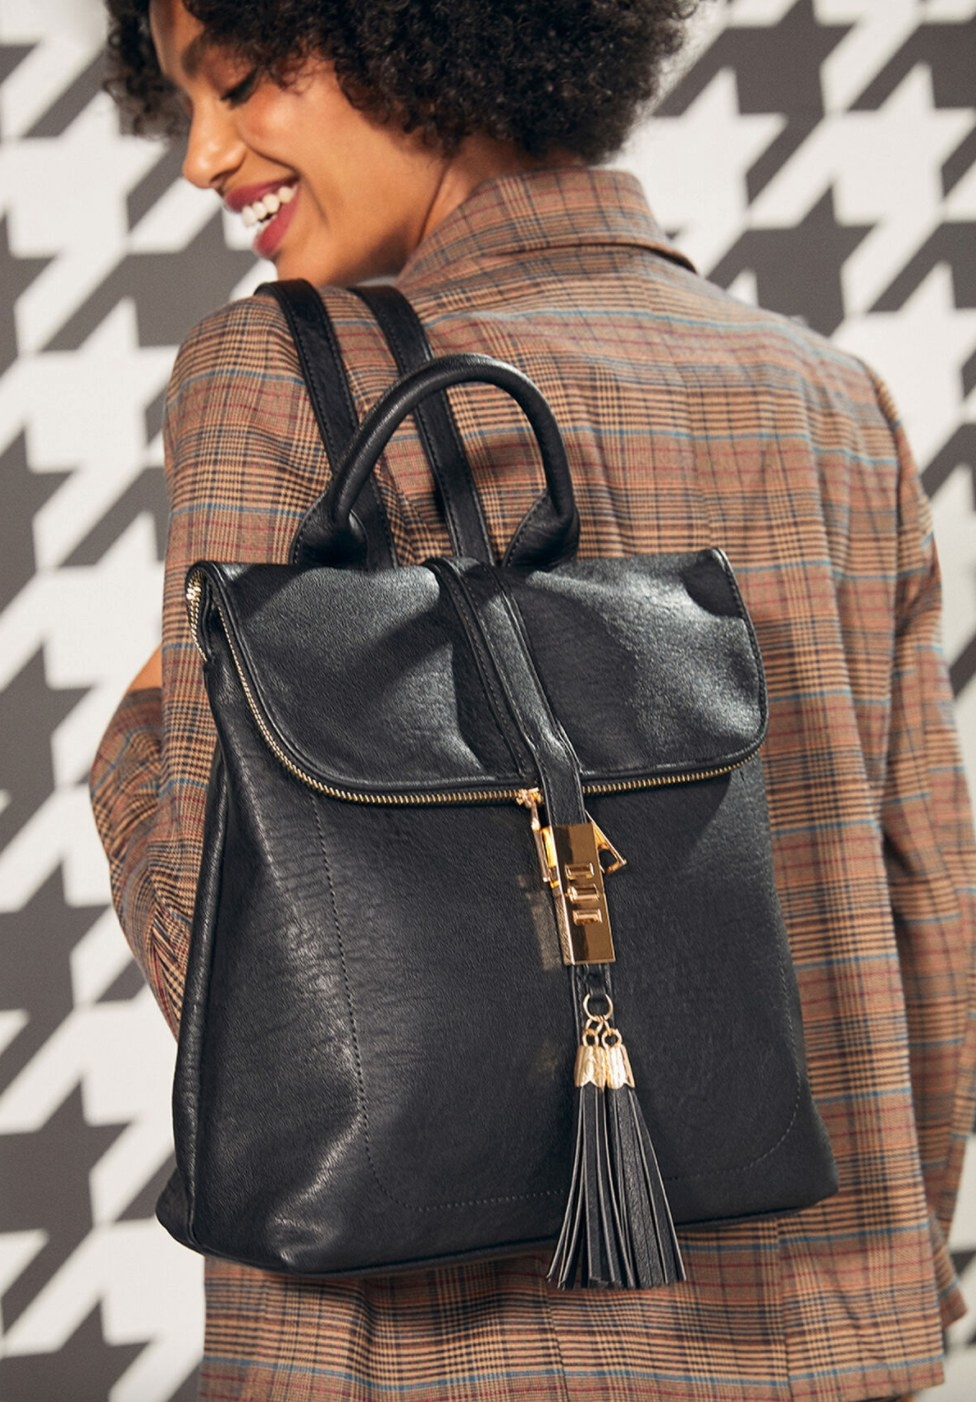 model carrying the black strap backpack with fringe